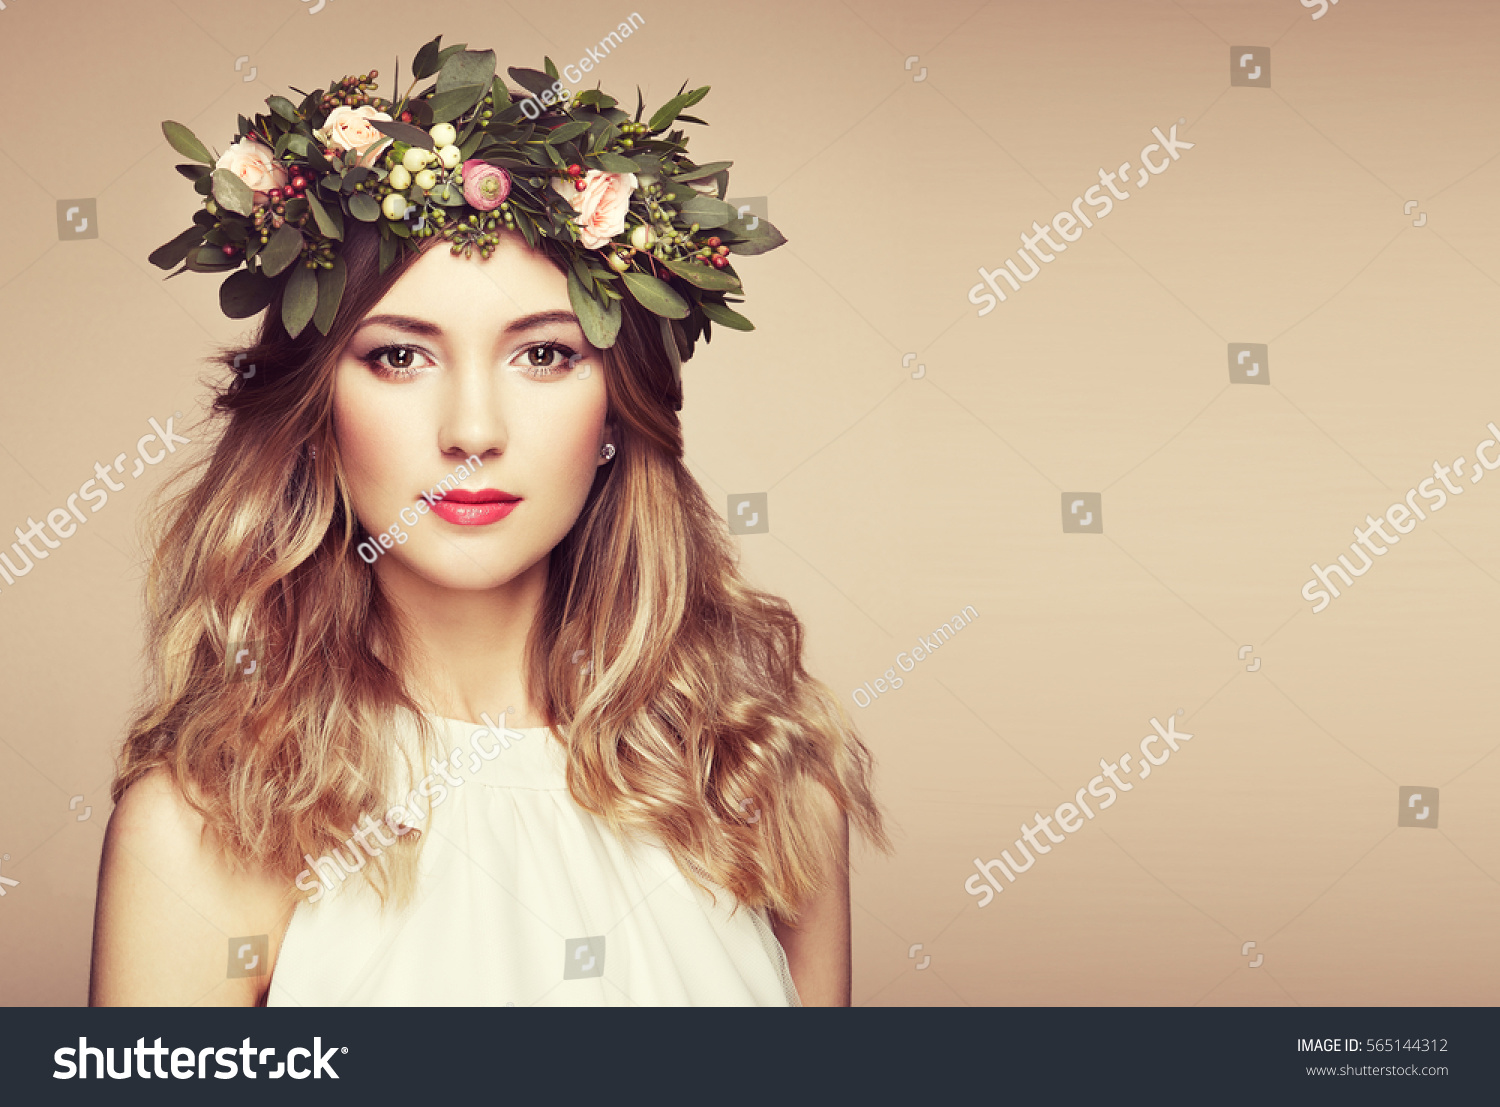 Beautiful Blonde Woman Flower Wreath On Stock Photo Royalty Free